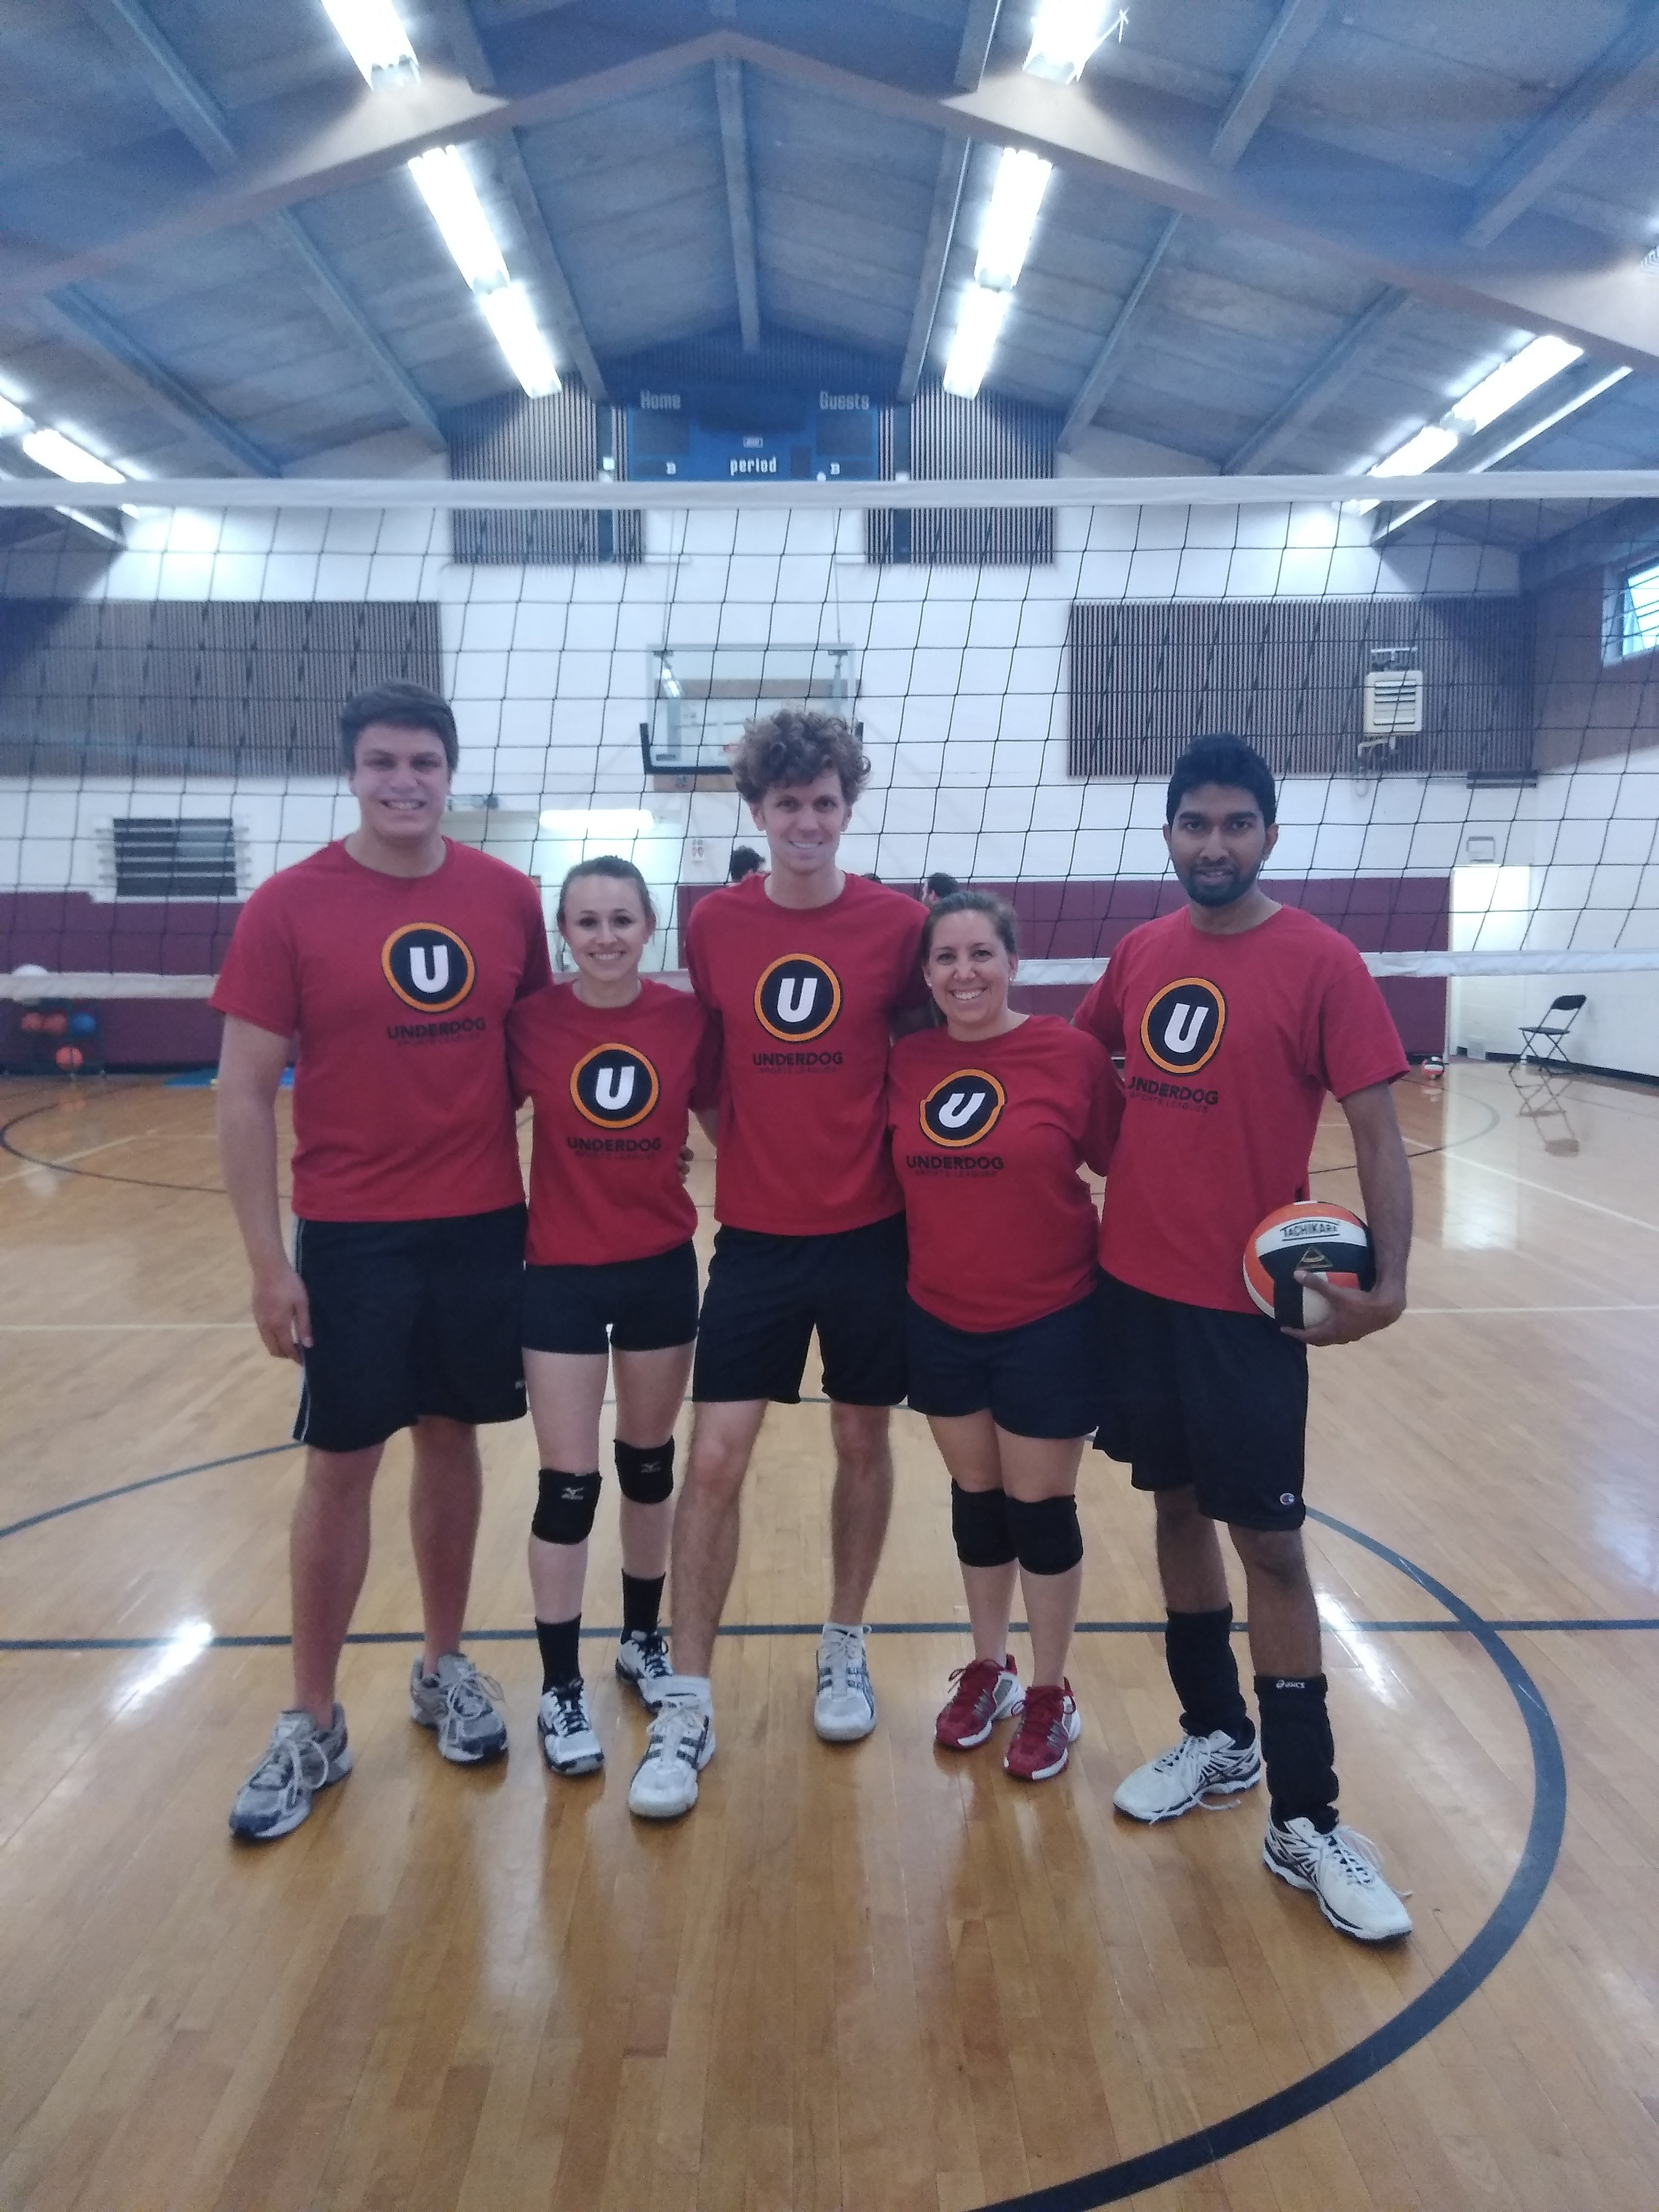 Volleyball - Seattle Adult Volleyball Leagues